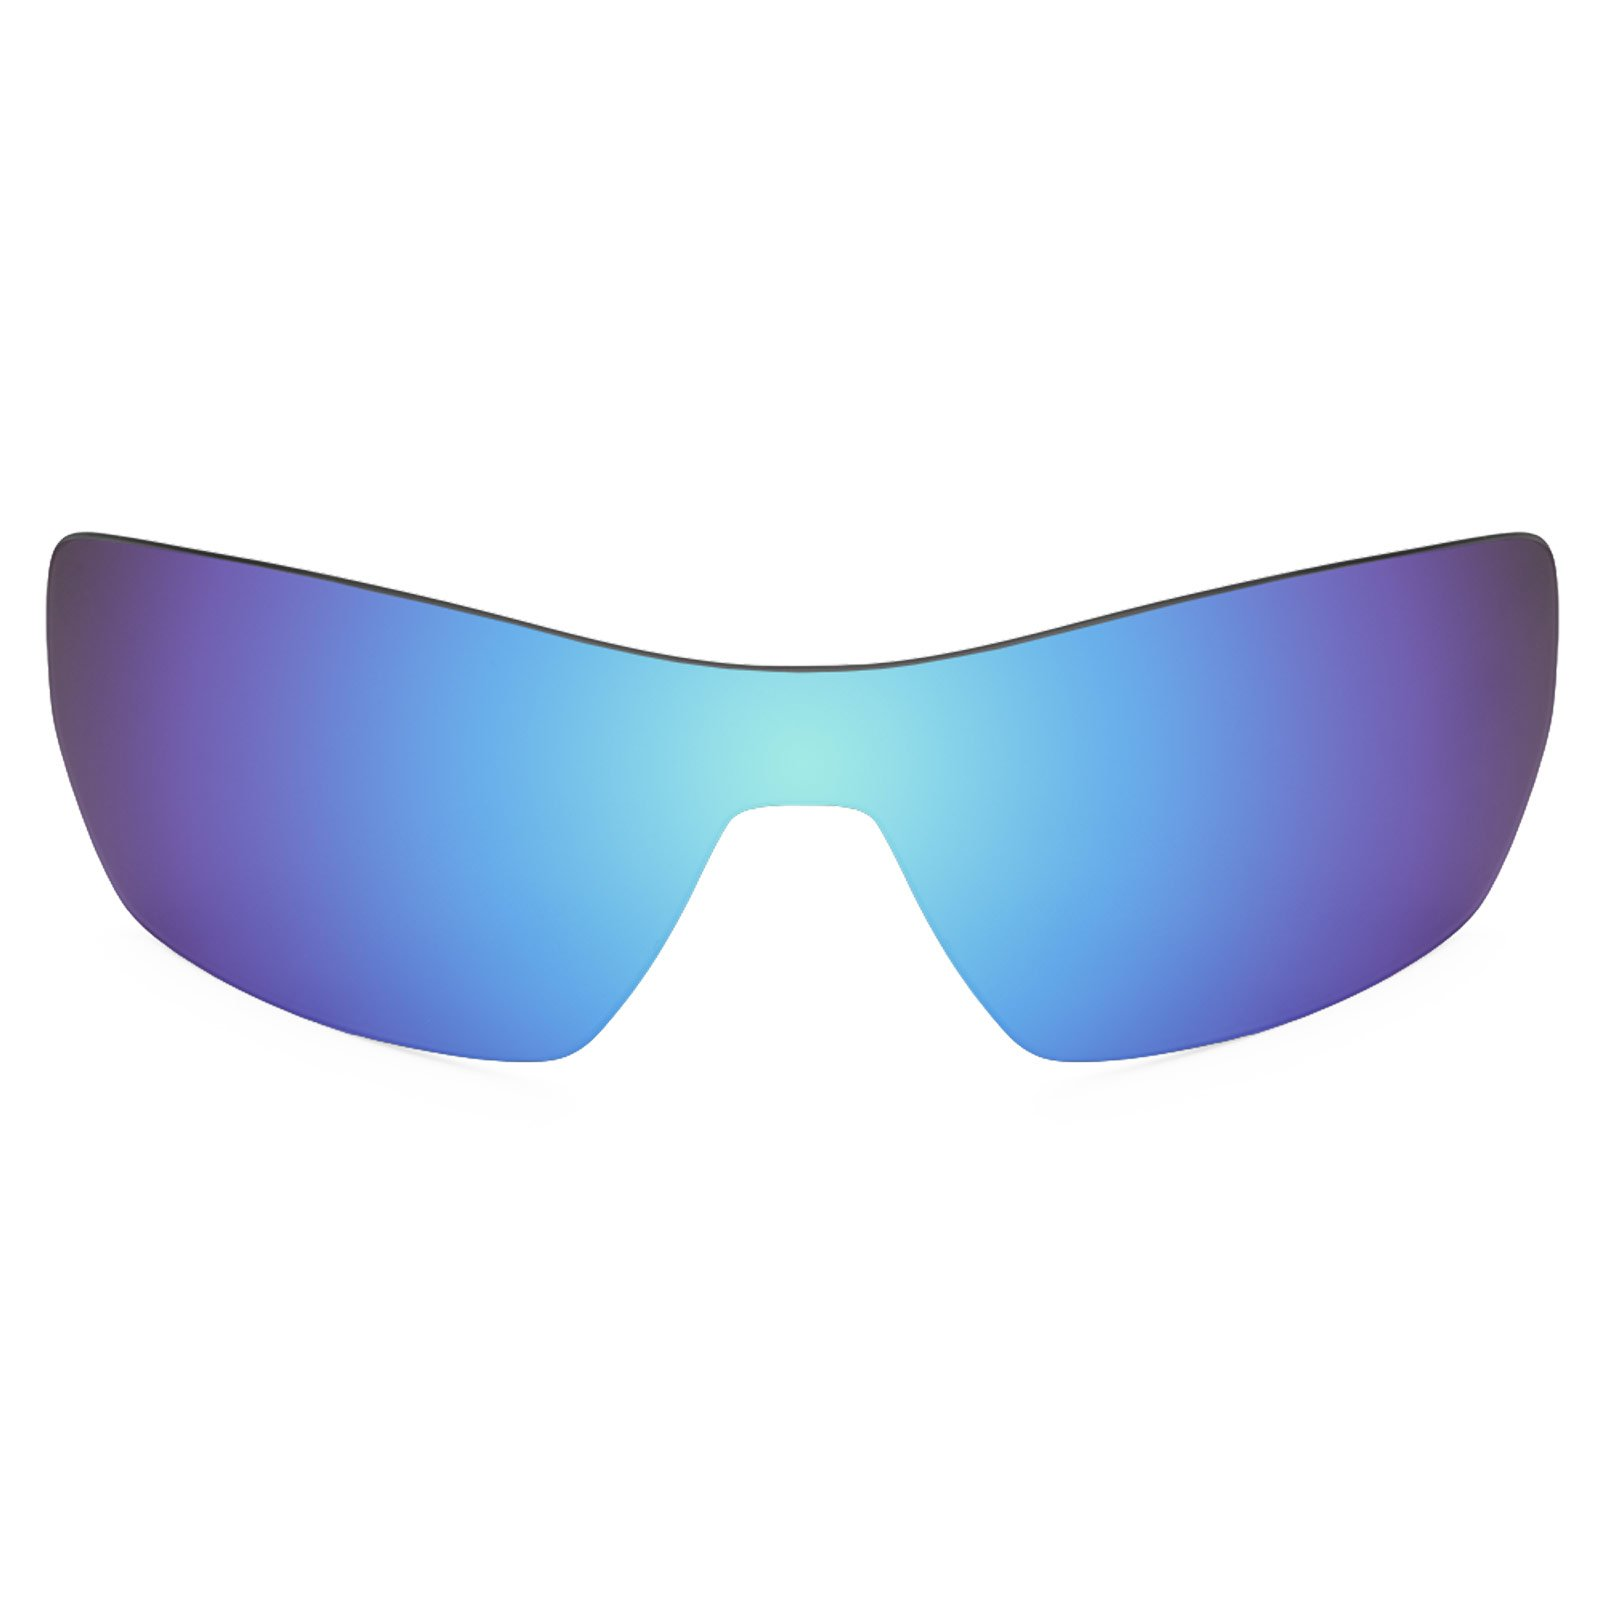 Revant Replacement Lenses for Oakley Offshoot, Polarized, Ice Blue MirrorShield